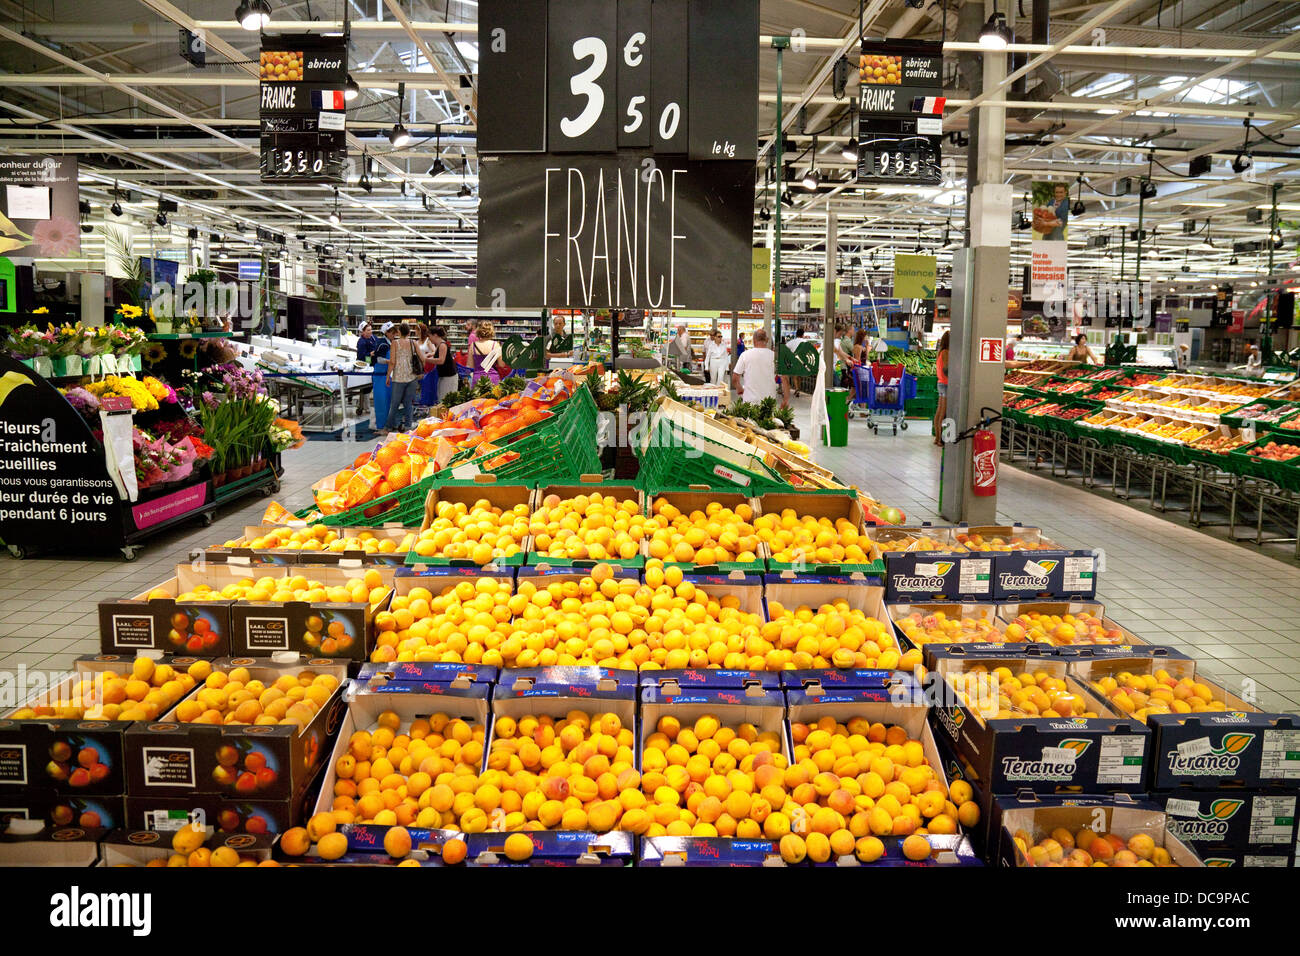 Local french produce - fruit - for sale, Carrefour